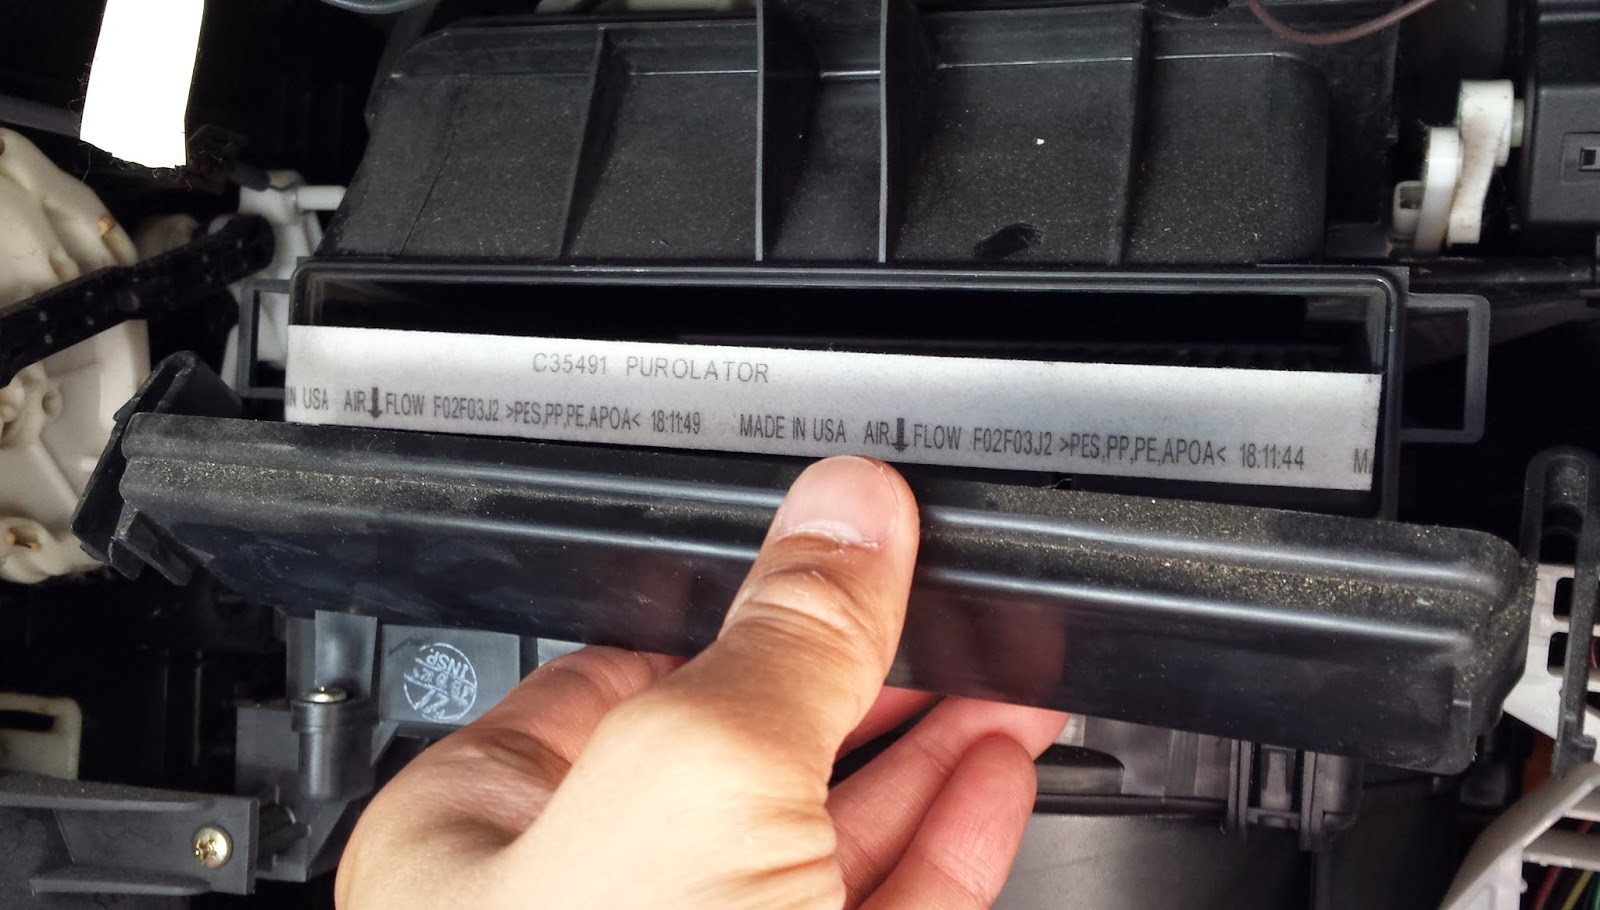 Change in cabin air filter 2003 corolla toyota nation forum toyota car and truck forums